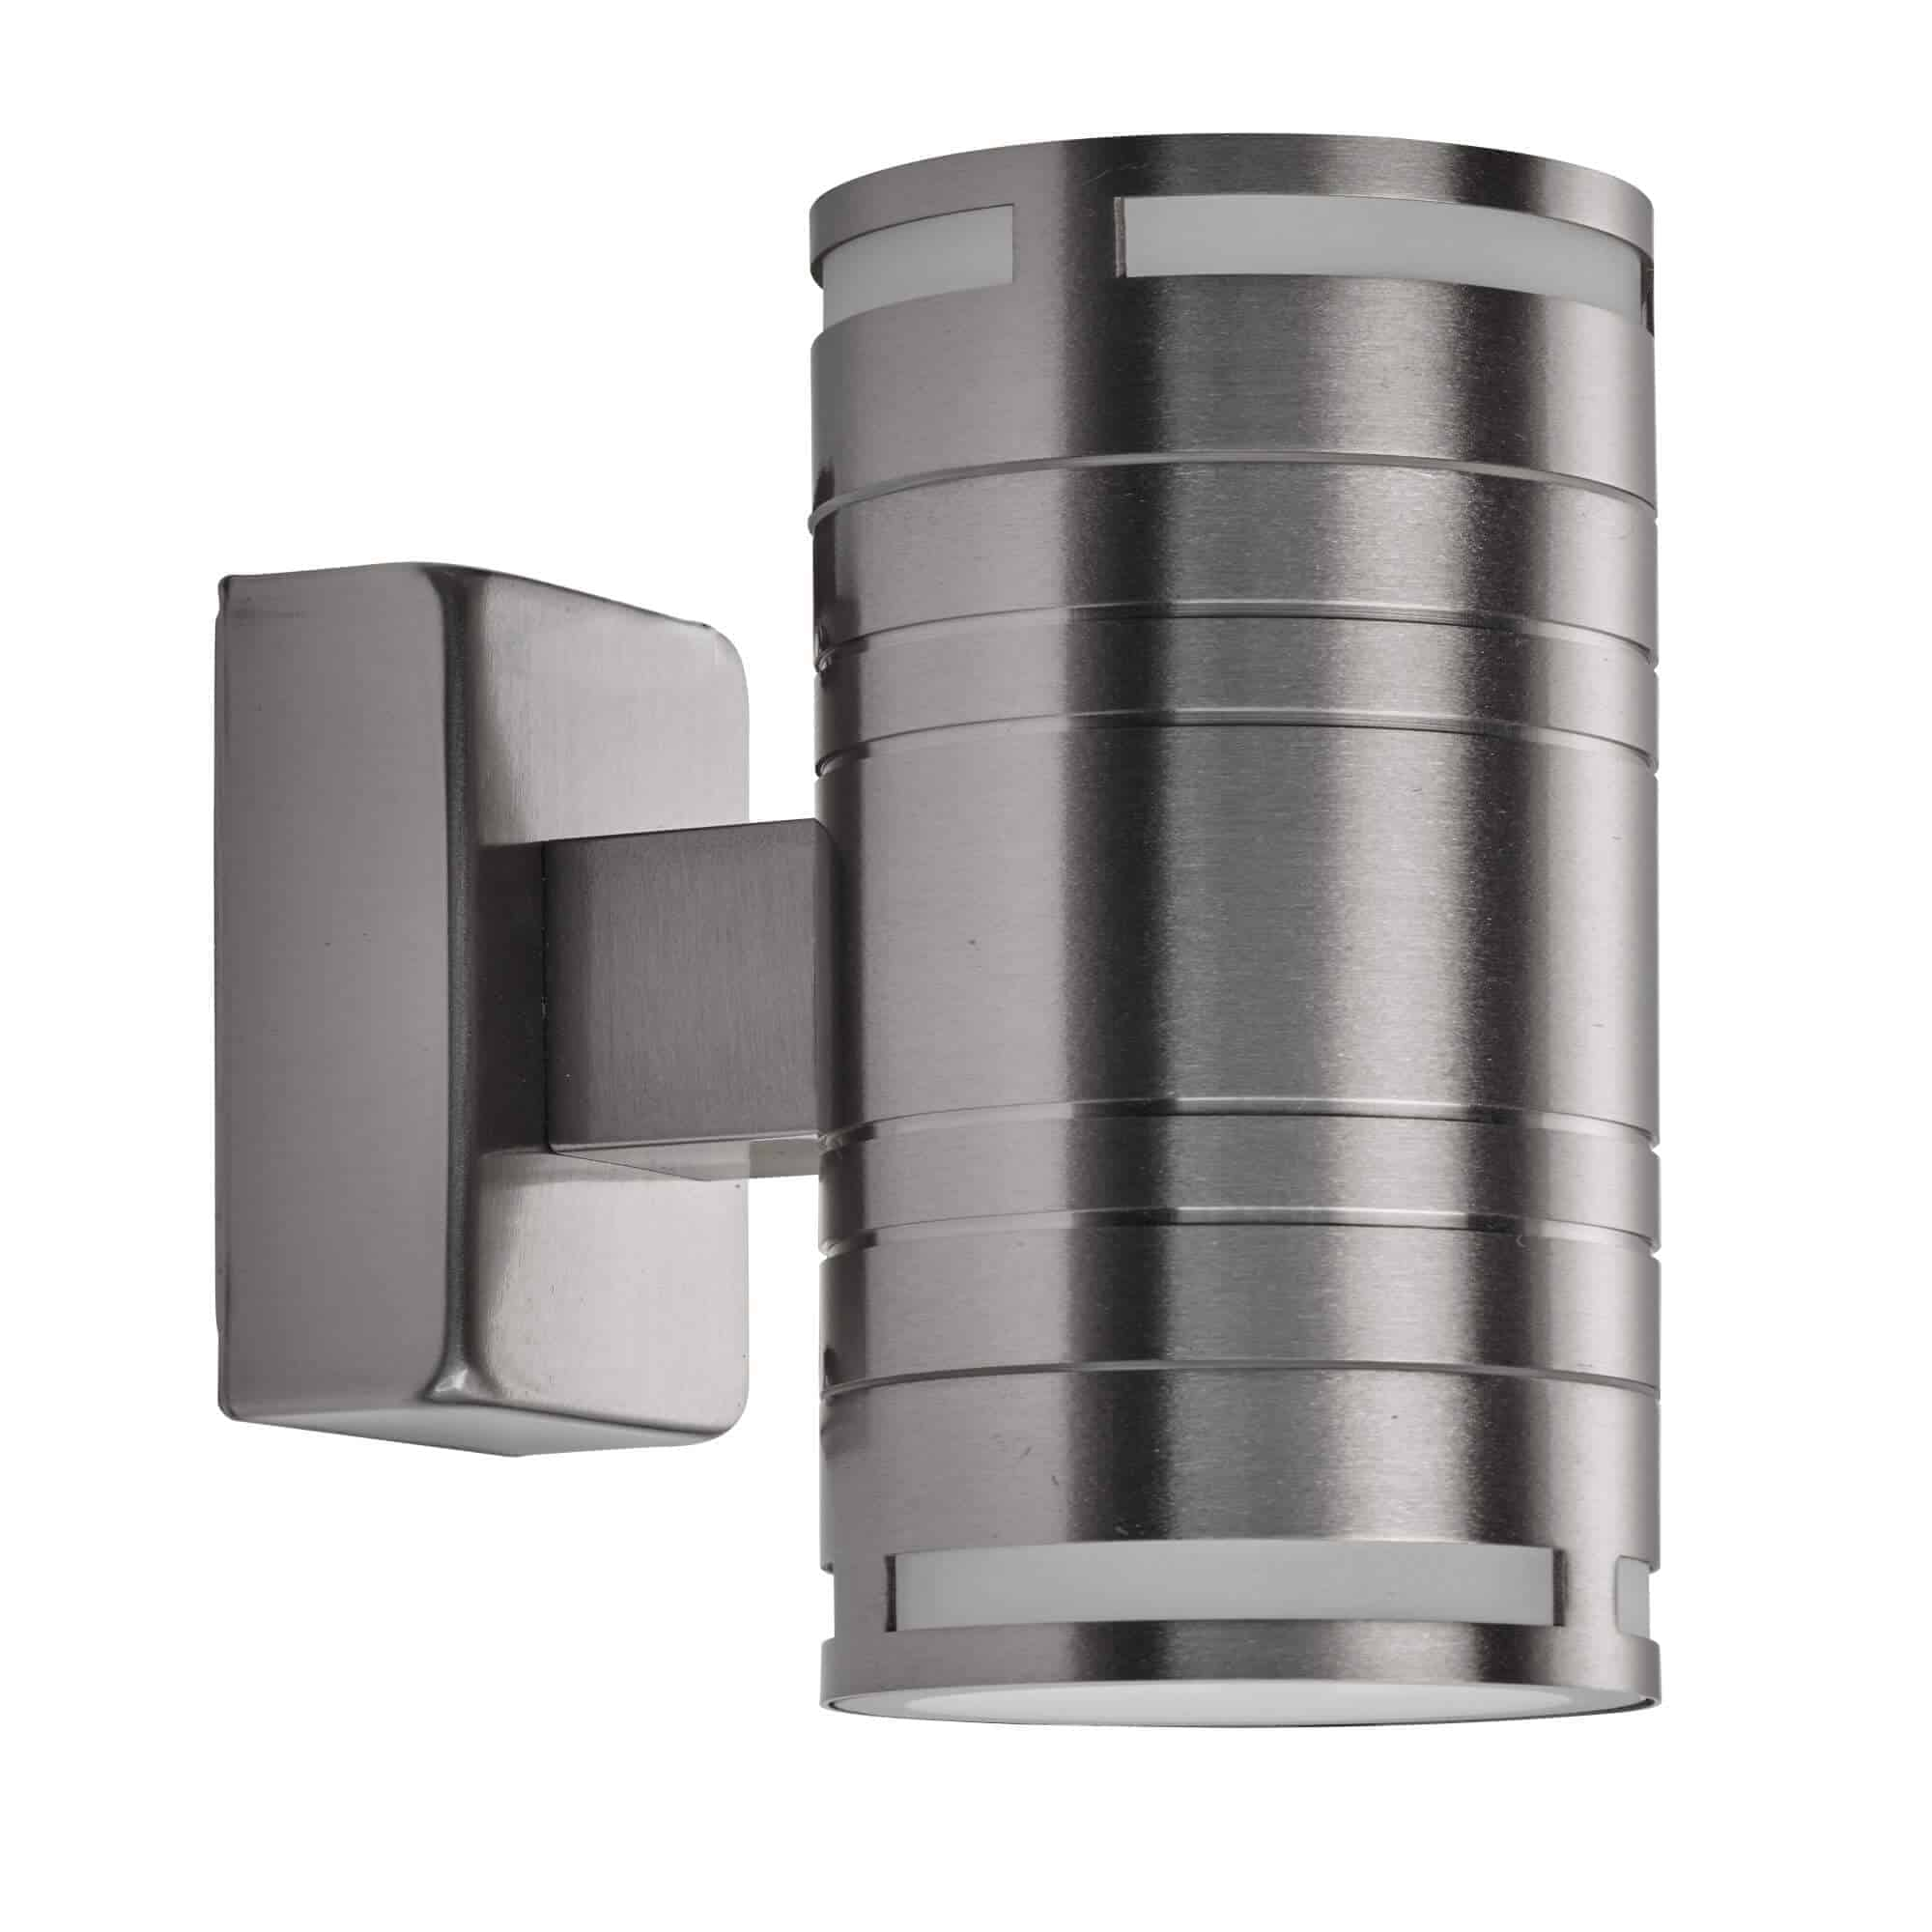 2018-2-LED – Searchlight LED Outdoor & Porch (Gu10 LED) Stainless Steel 2 Light Wall Bracket